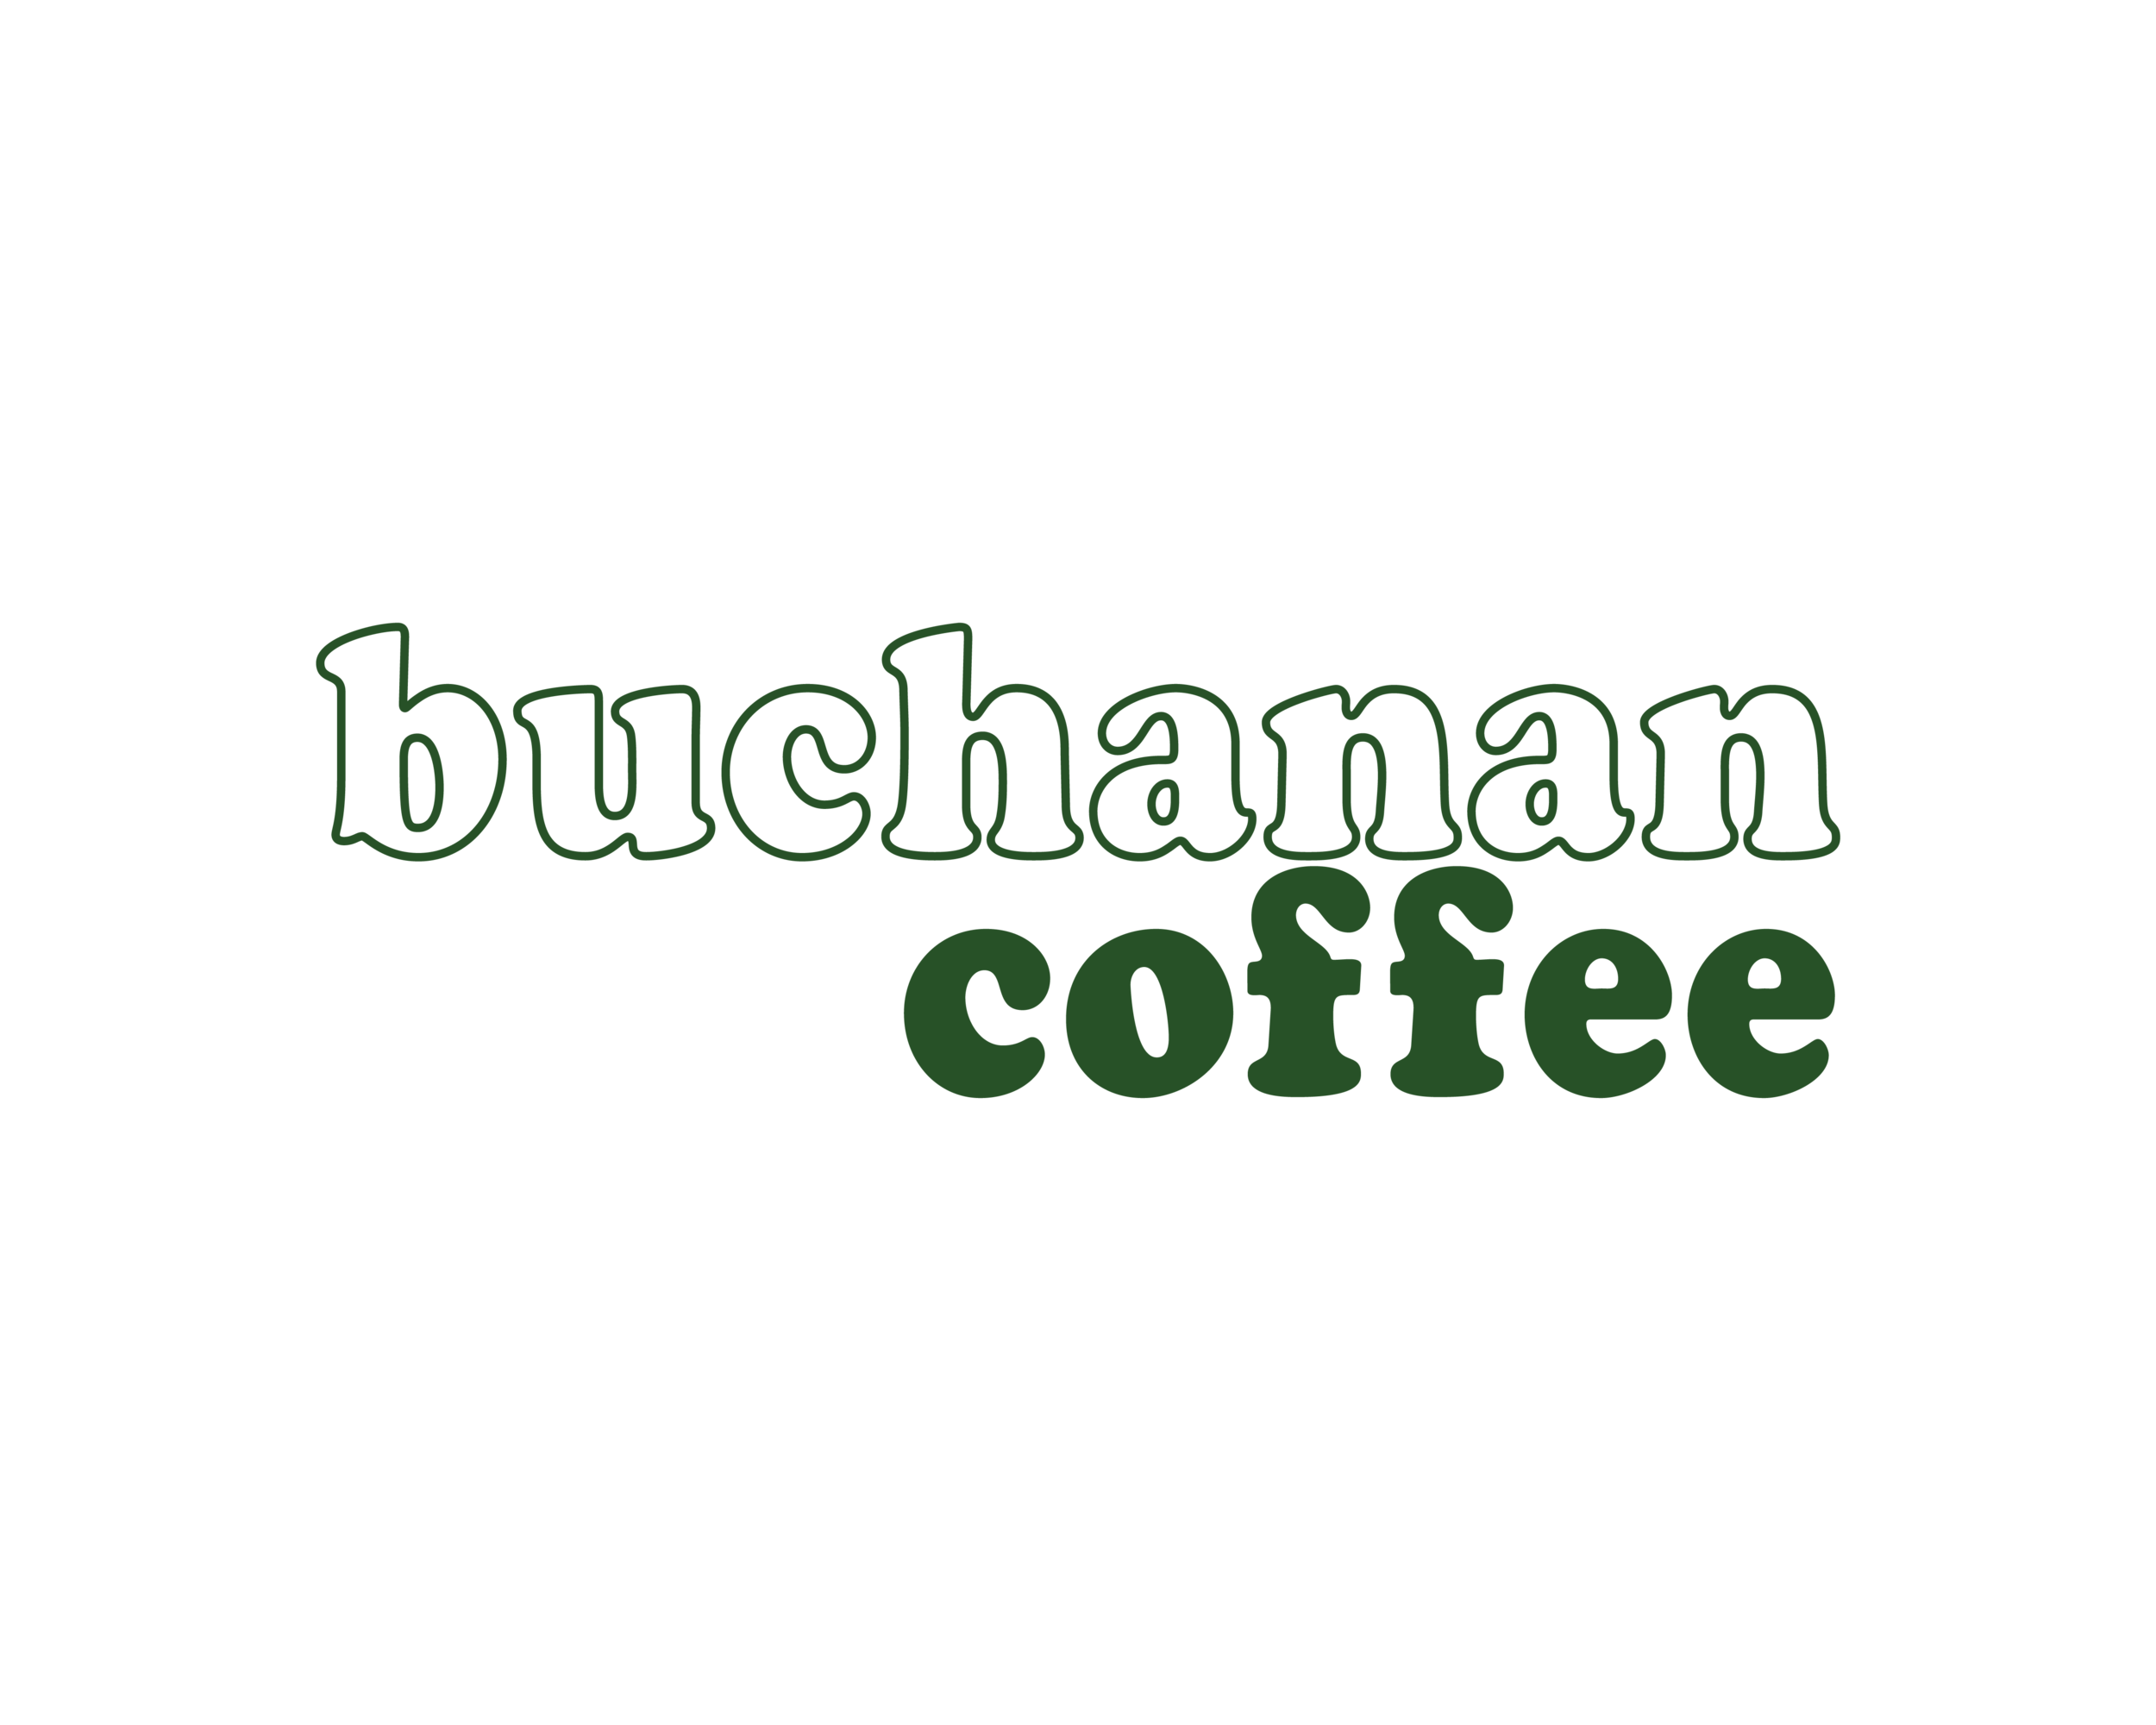 buchanan coffee_logo-08.png